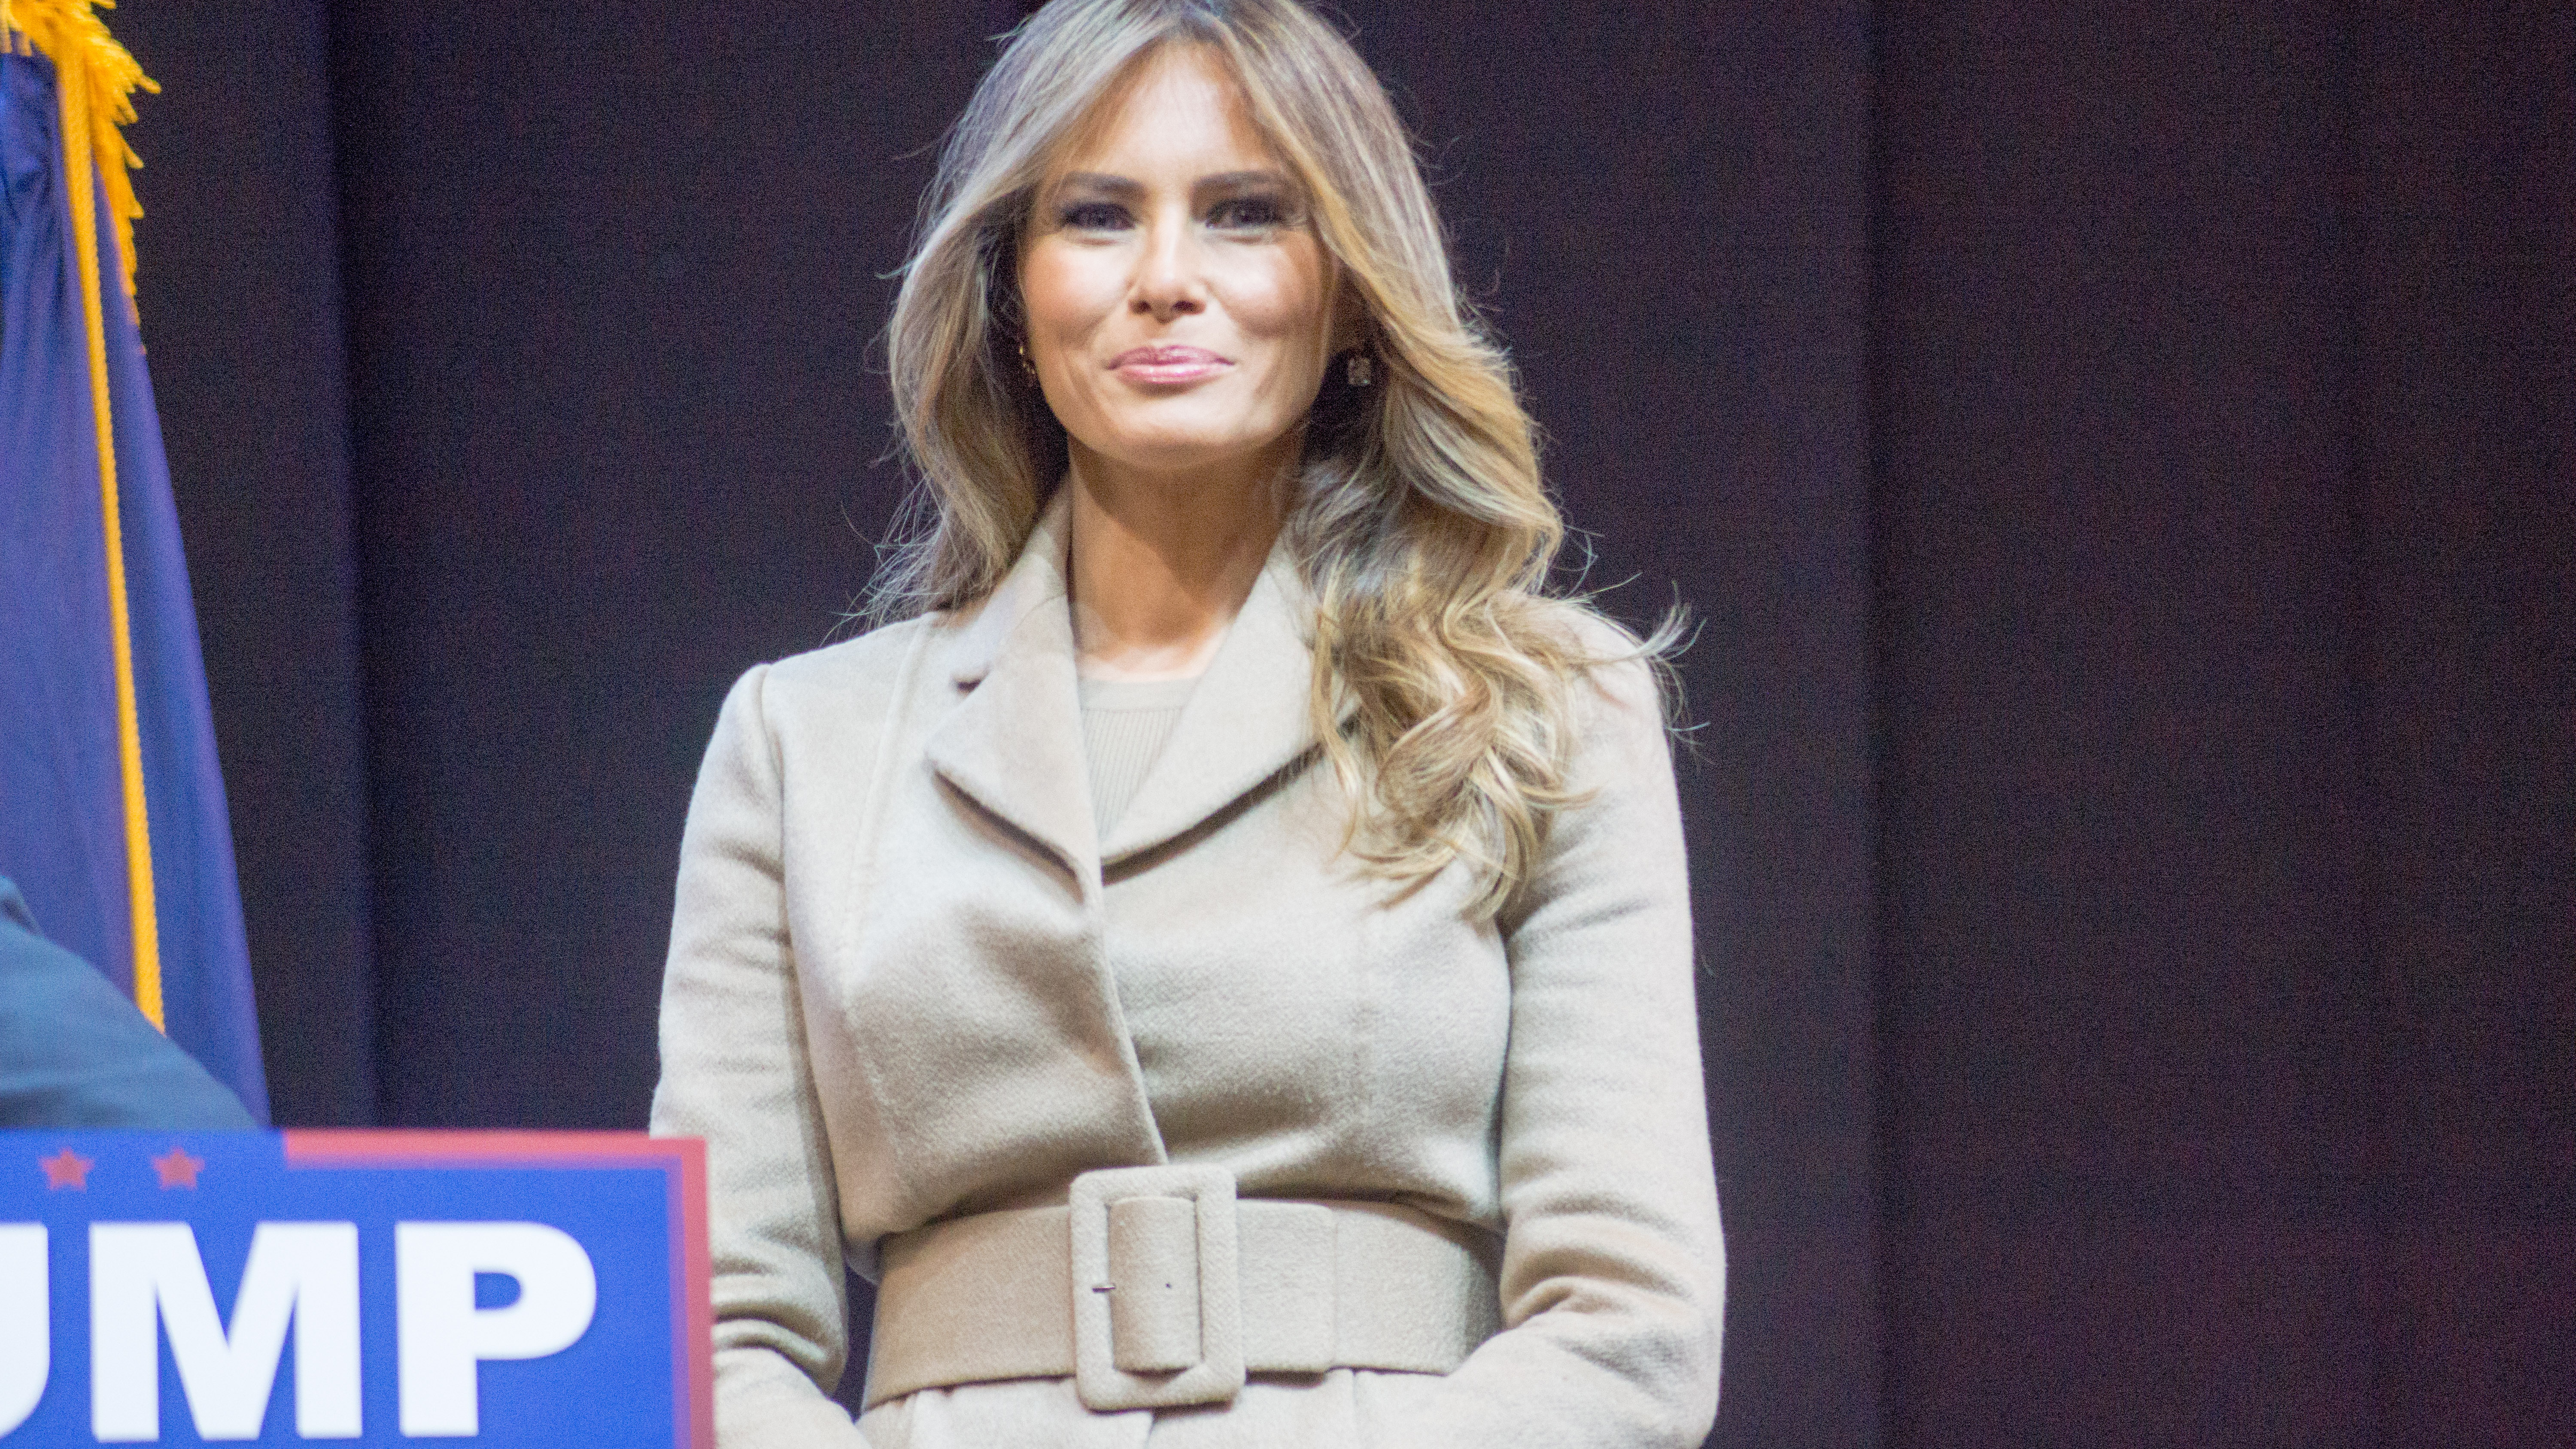 All About Melania Trump